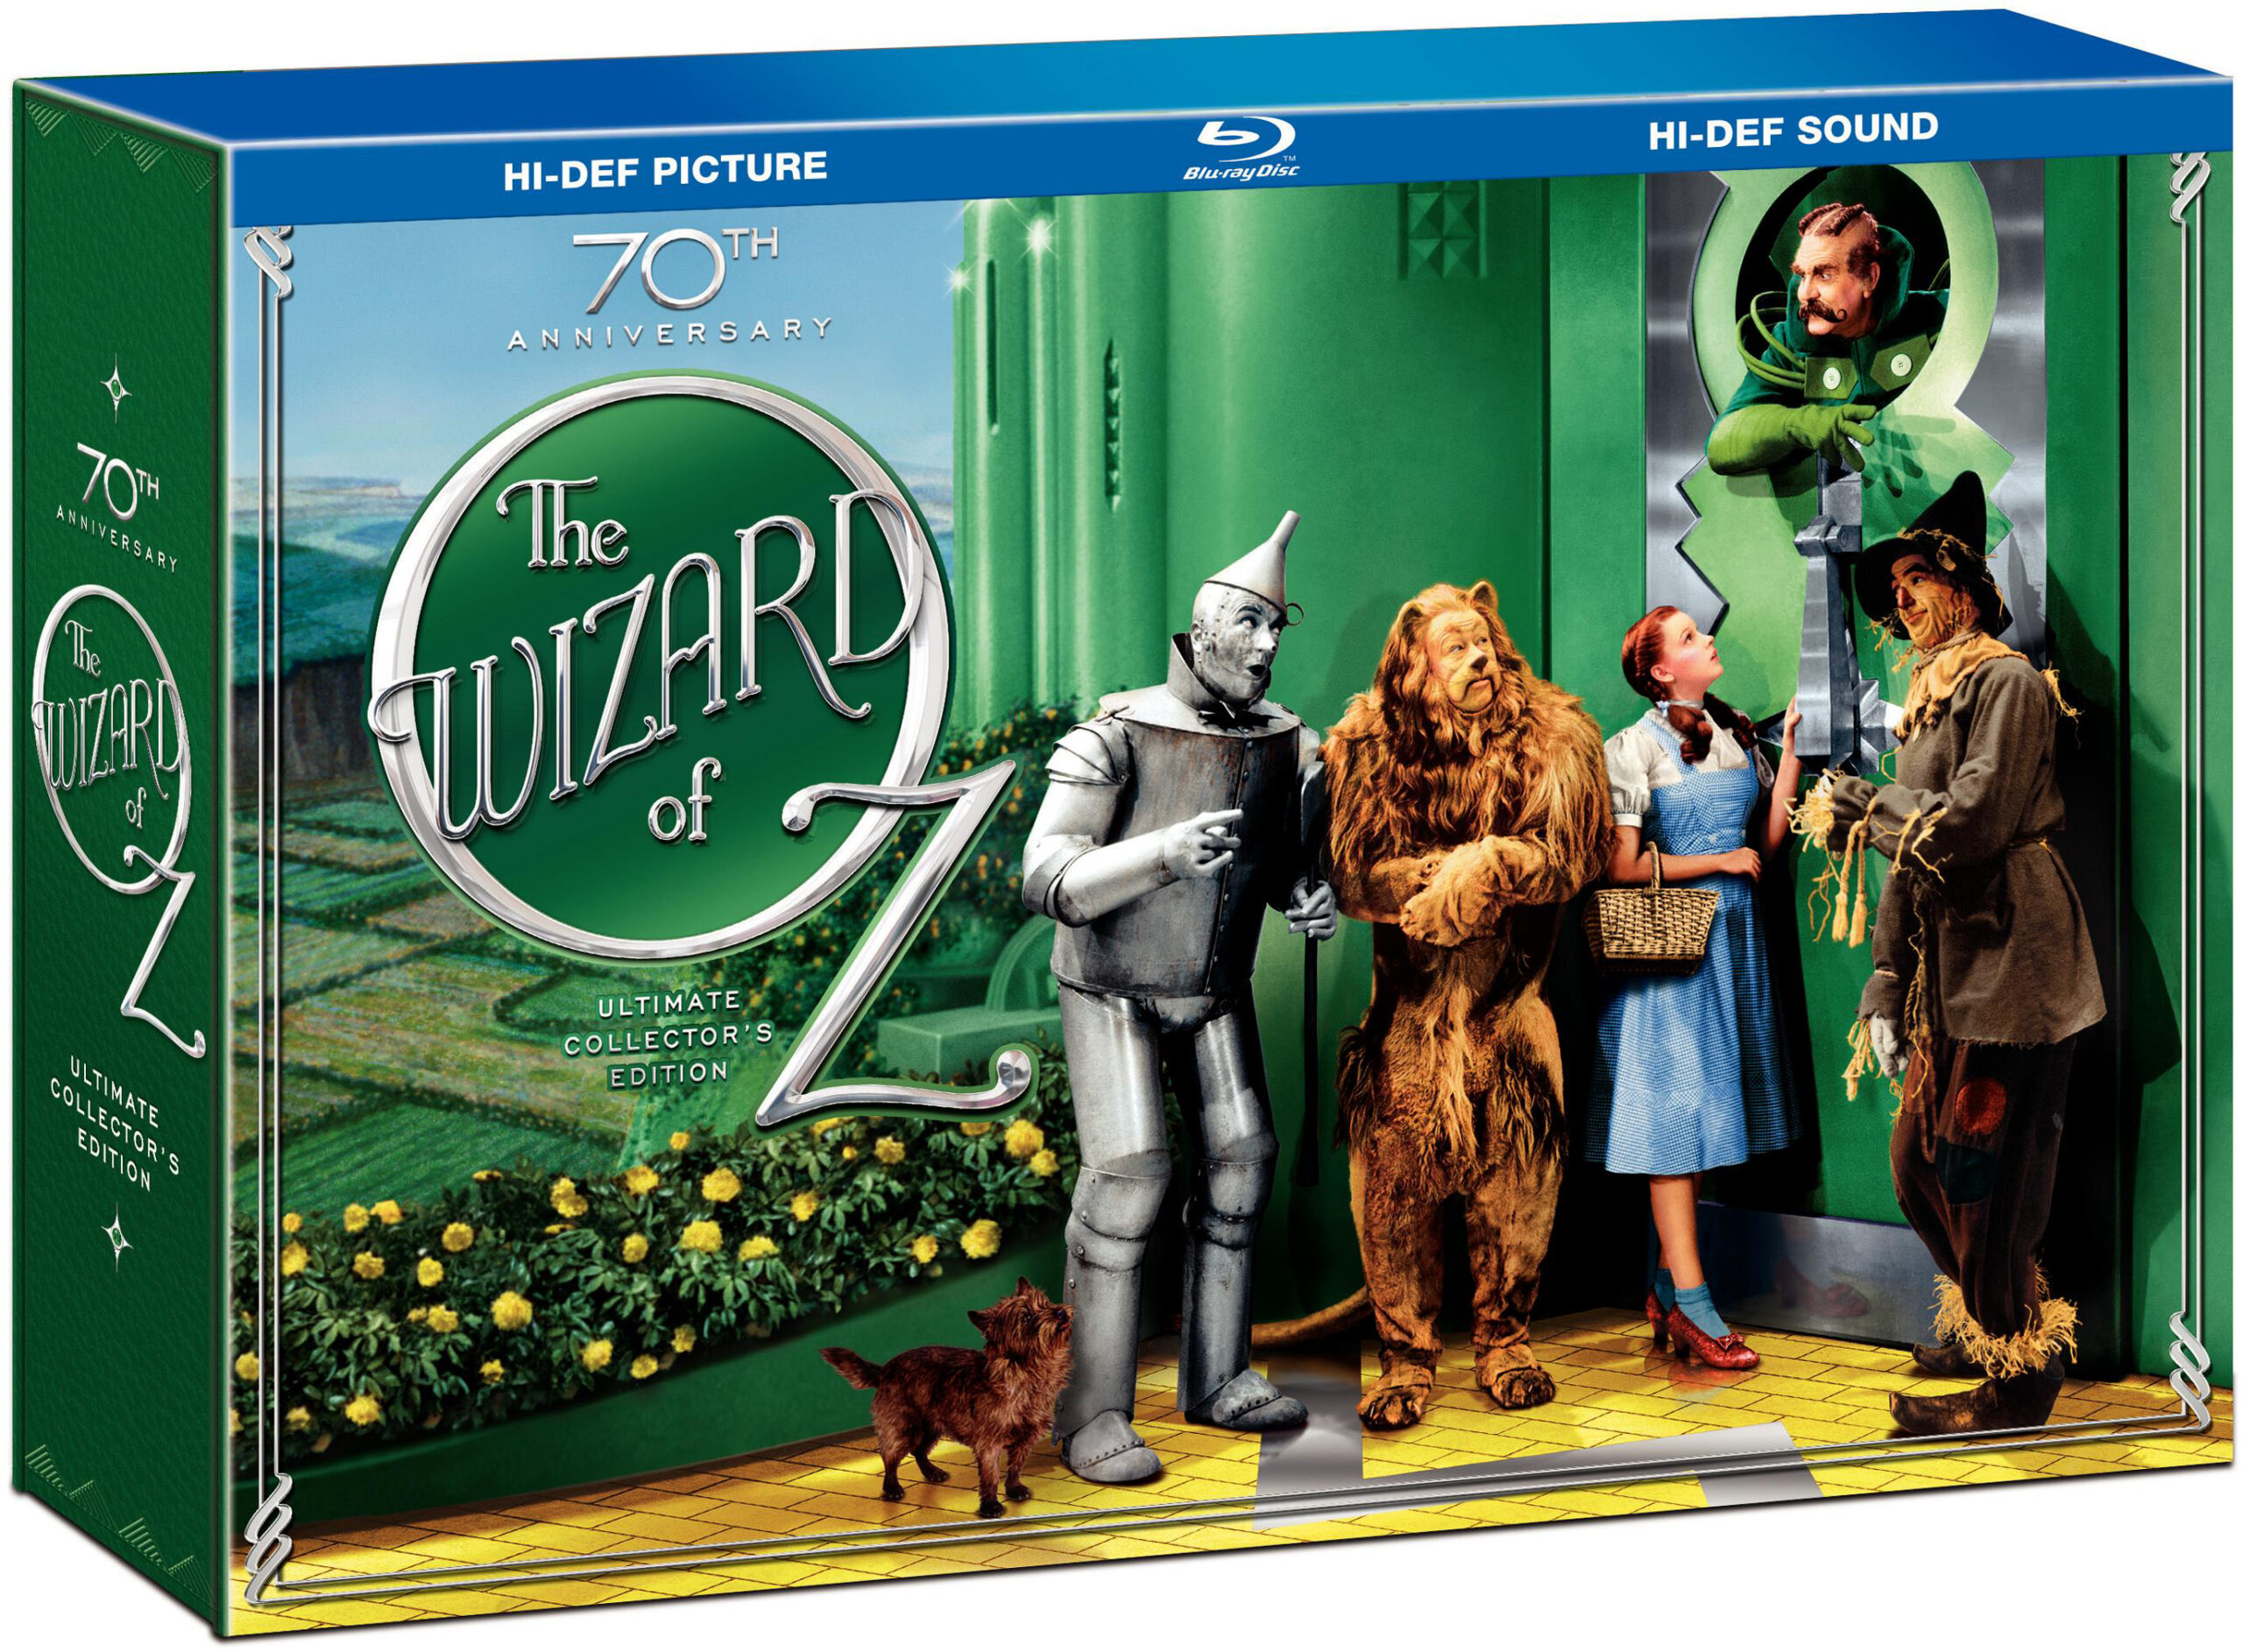 The Wizard of Oz 70th Anniversary Blu-ray Boxed Set